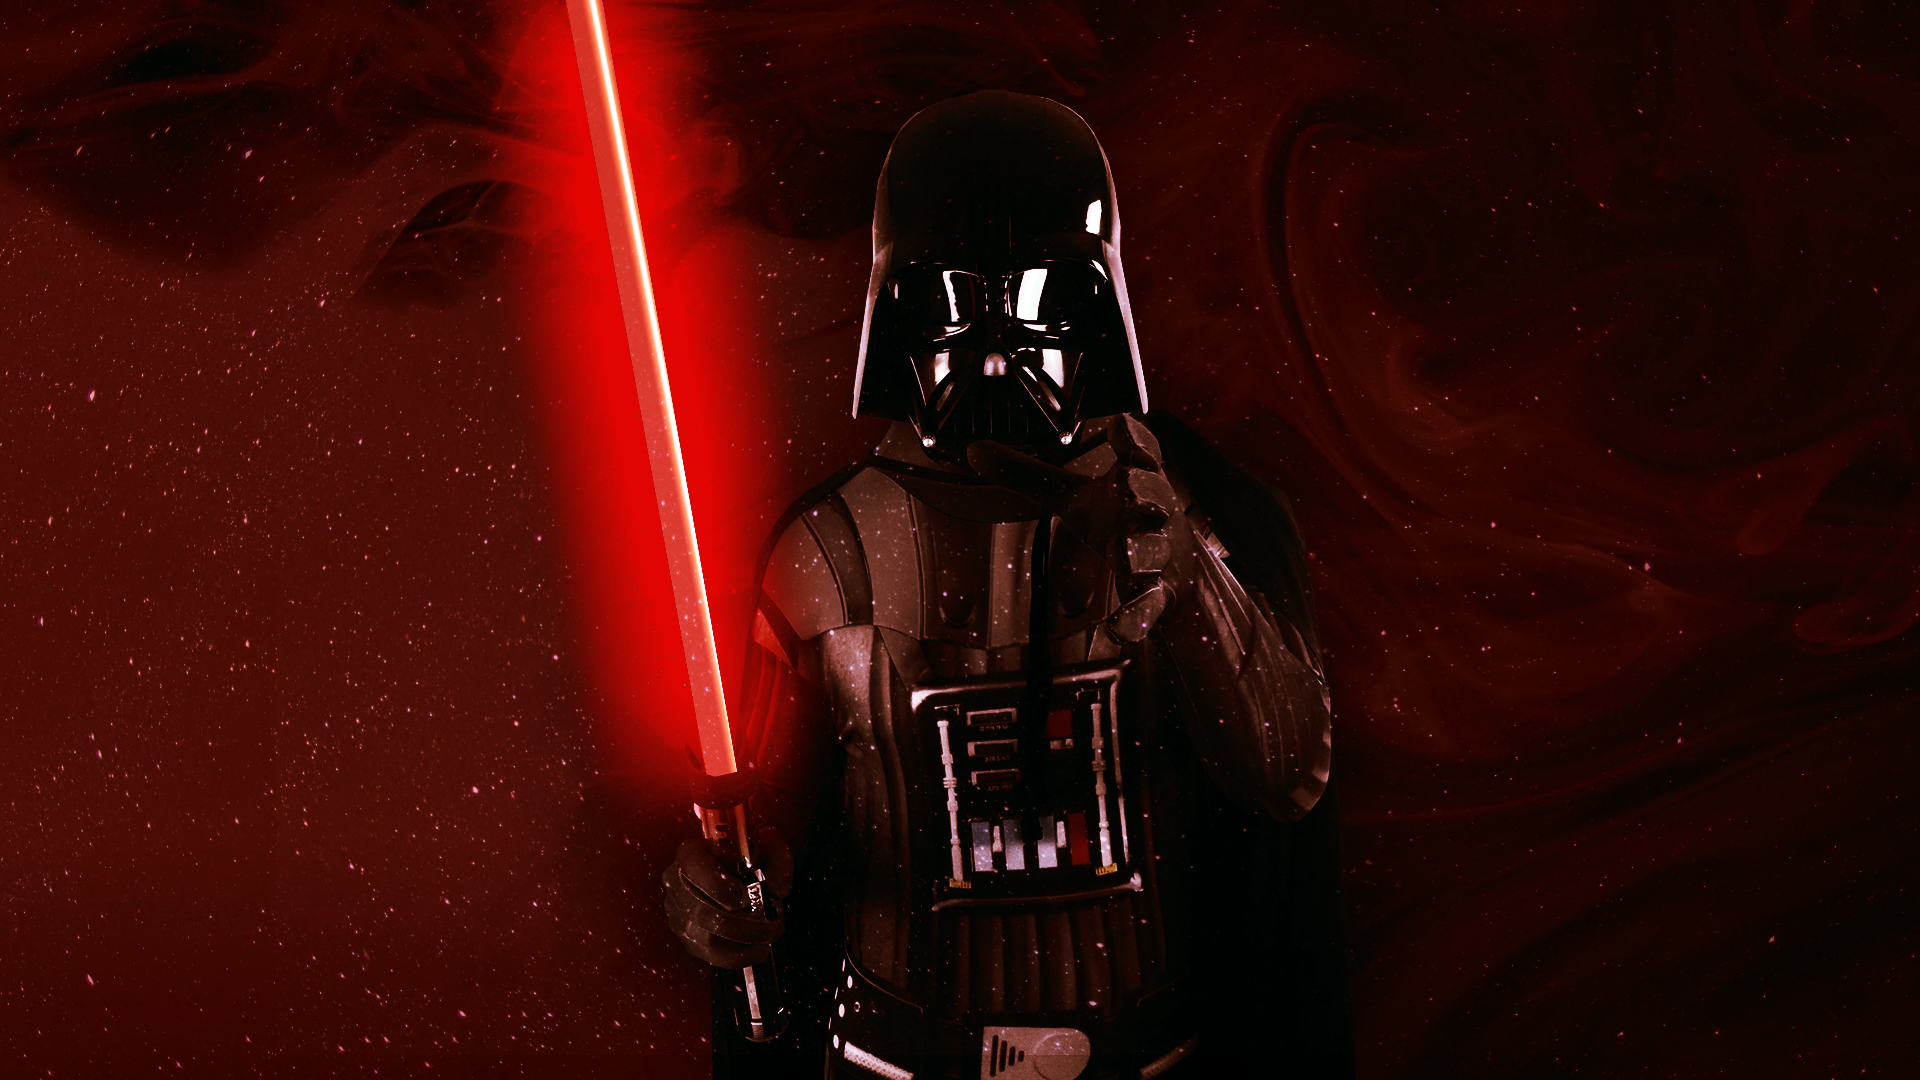 Black Hat Sith 6.png